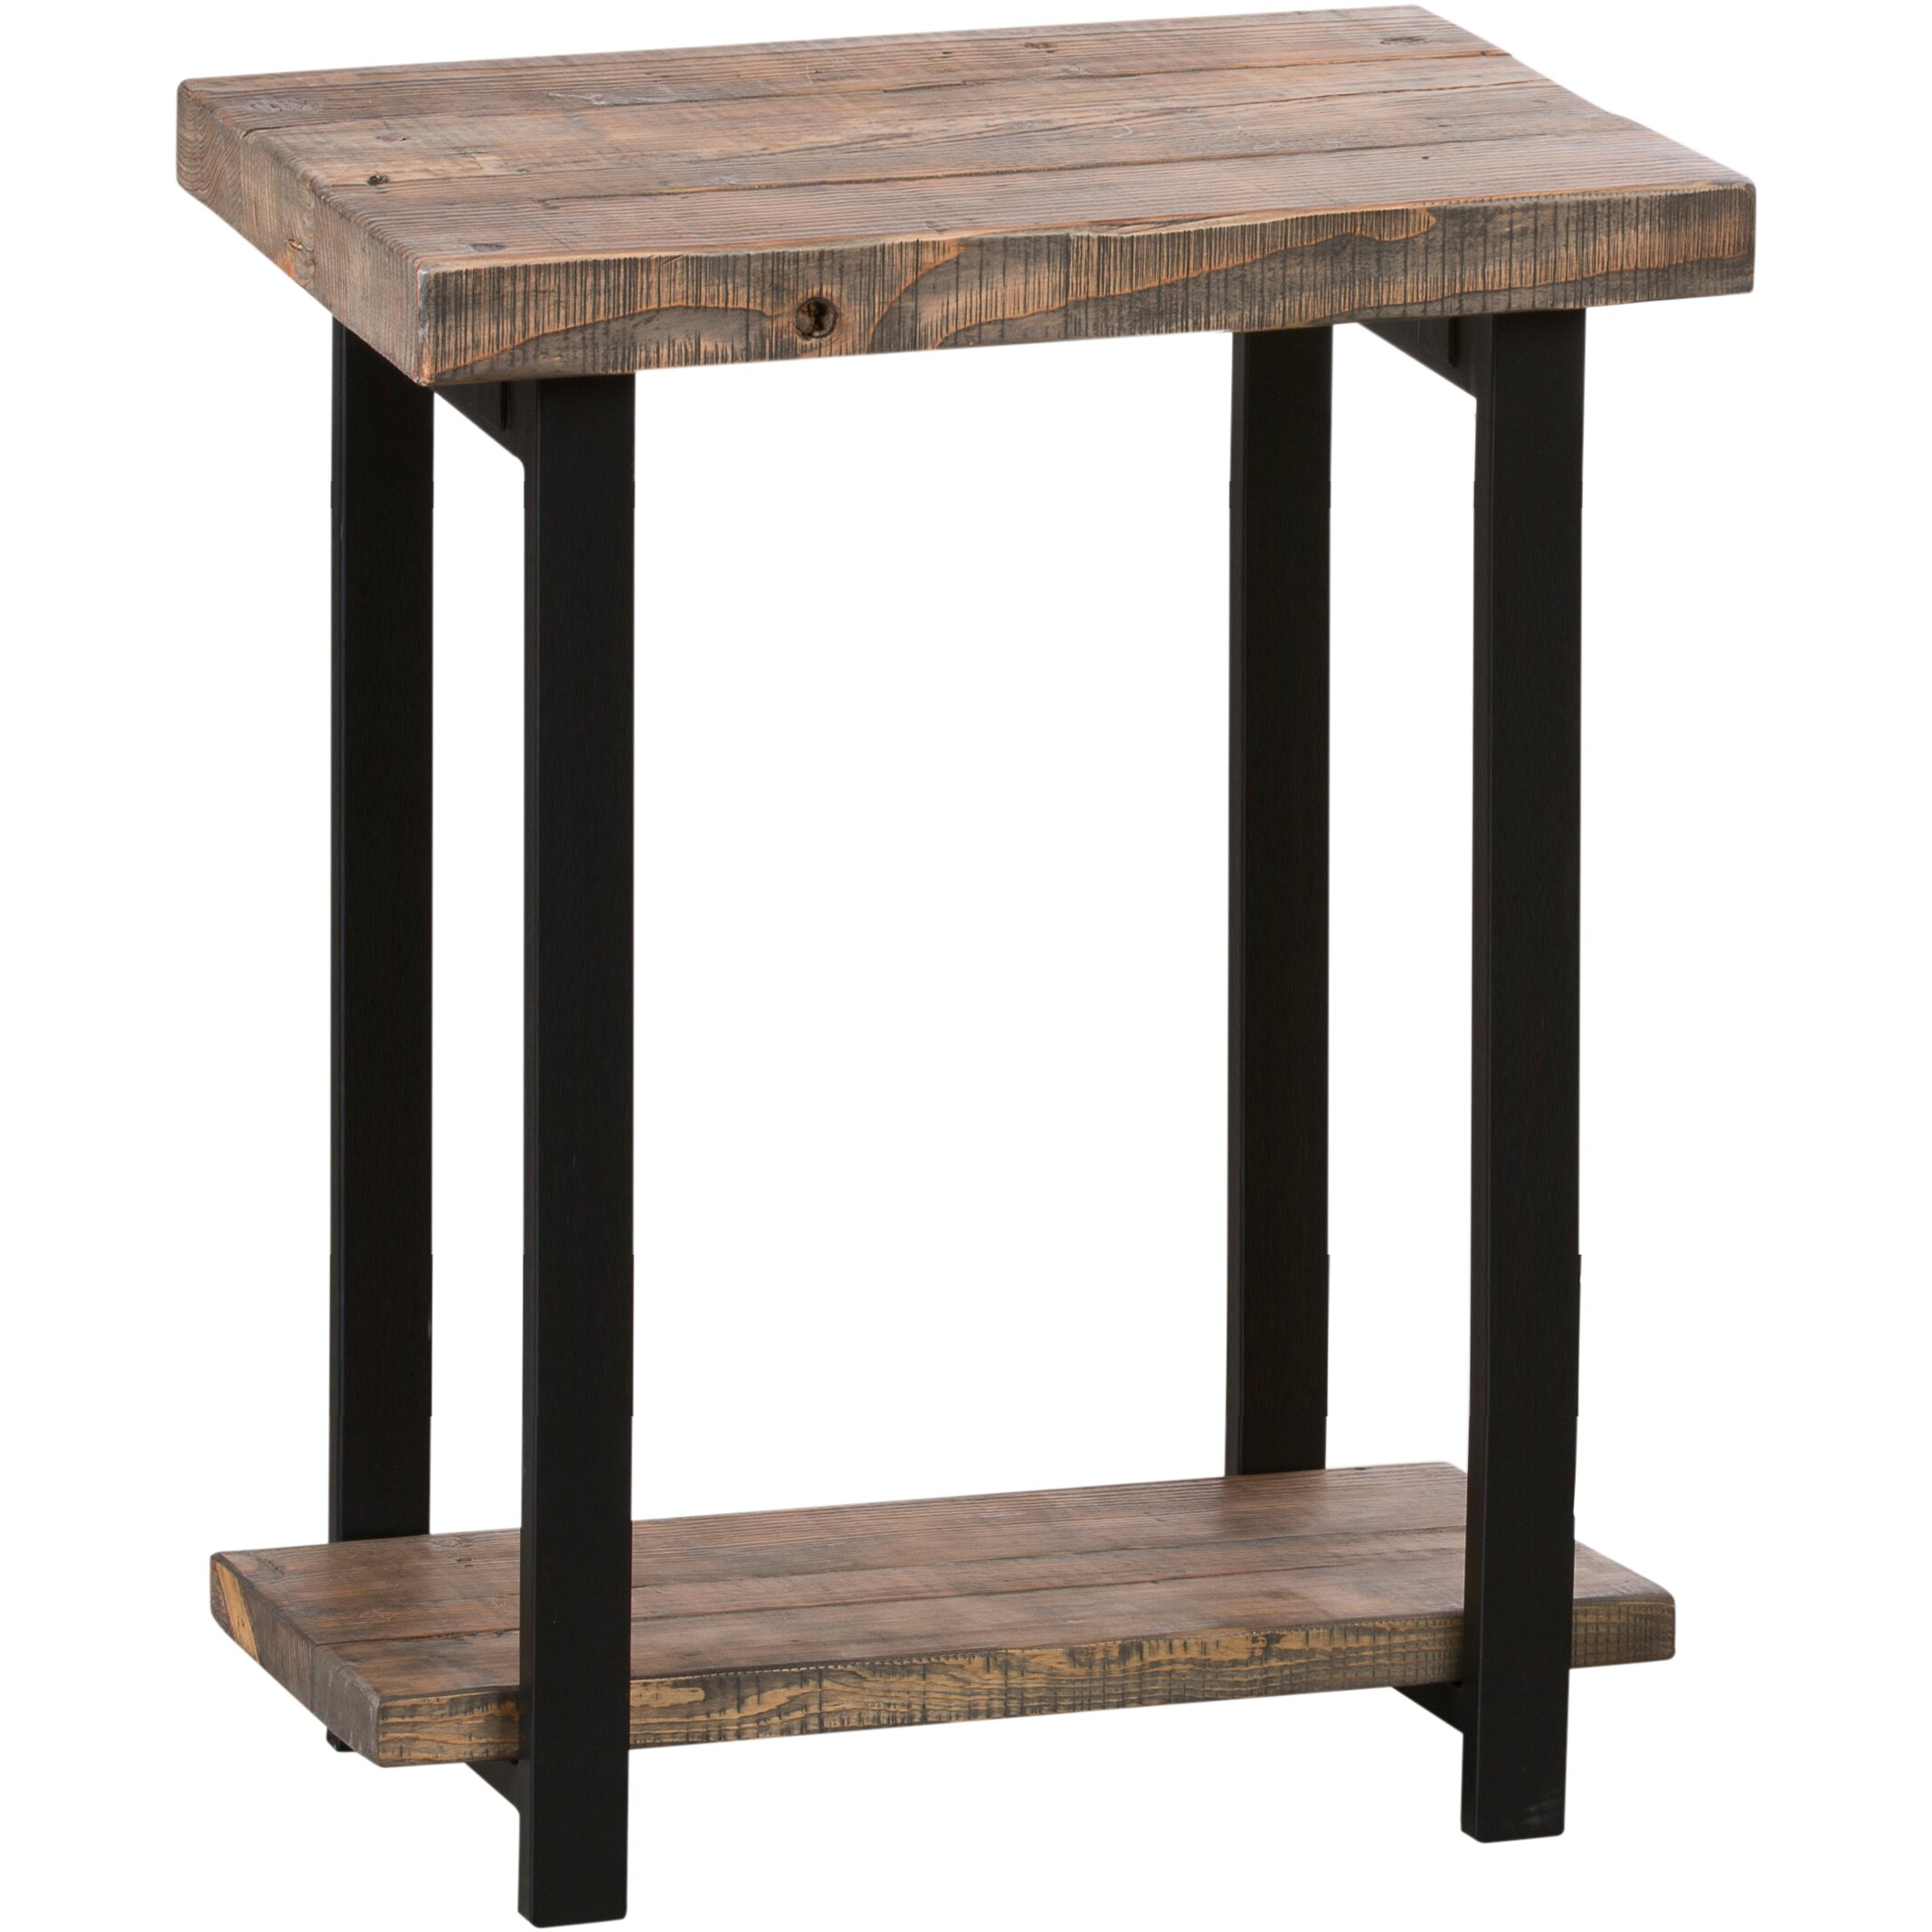 Loon peak somers reclaimed wood metal end table reviews for End tables for sale near me